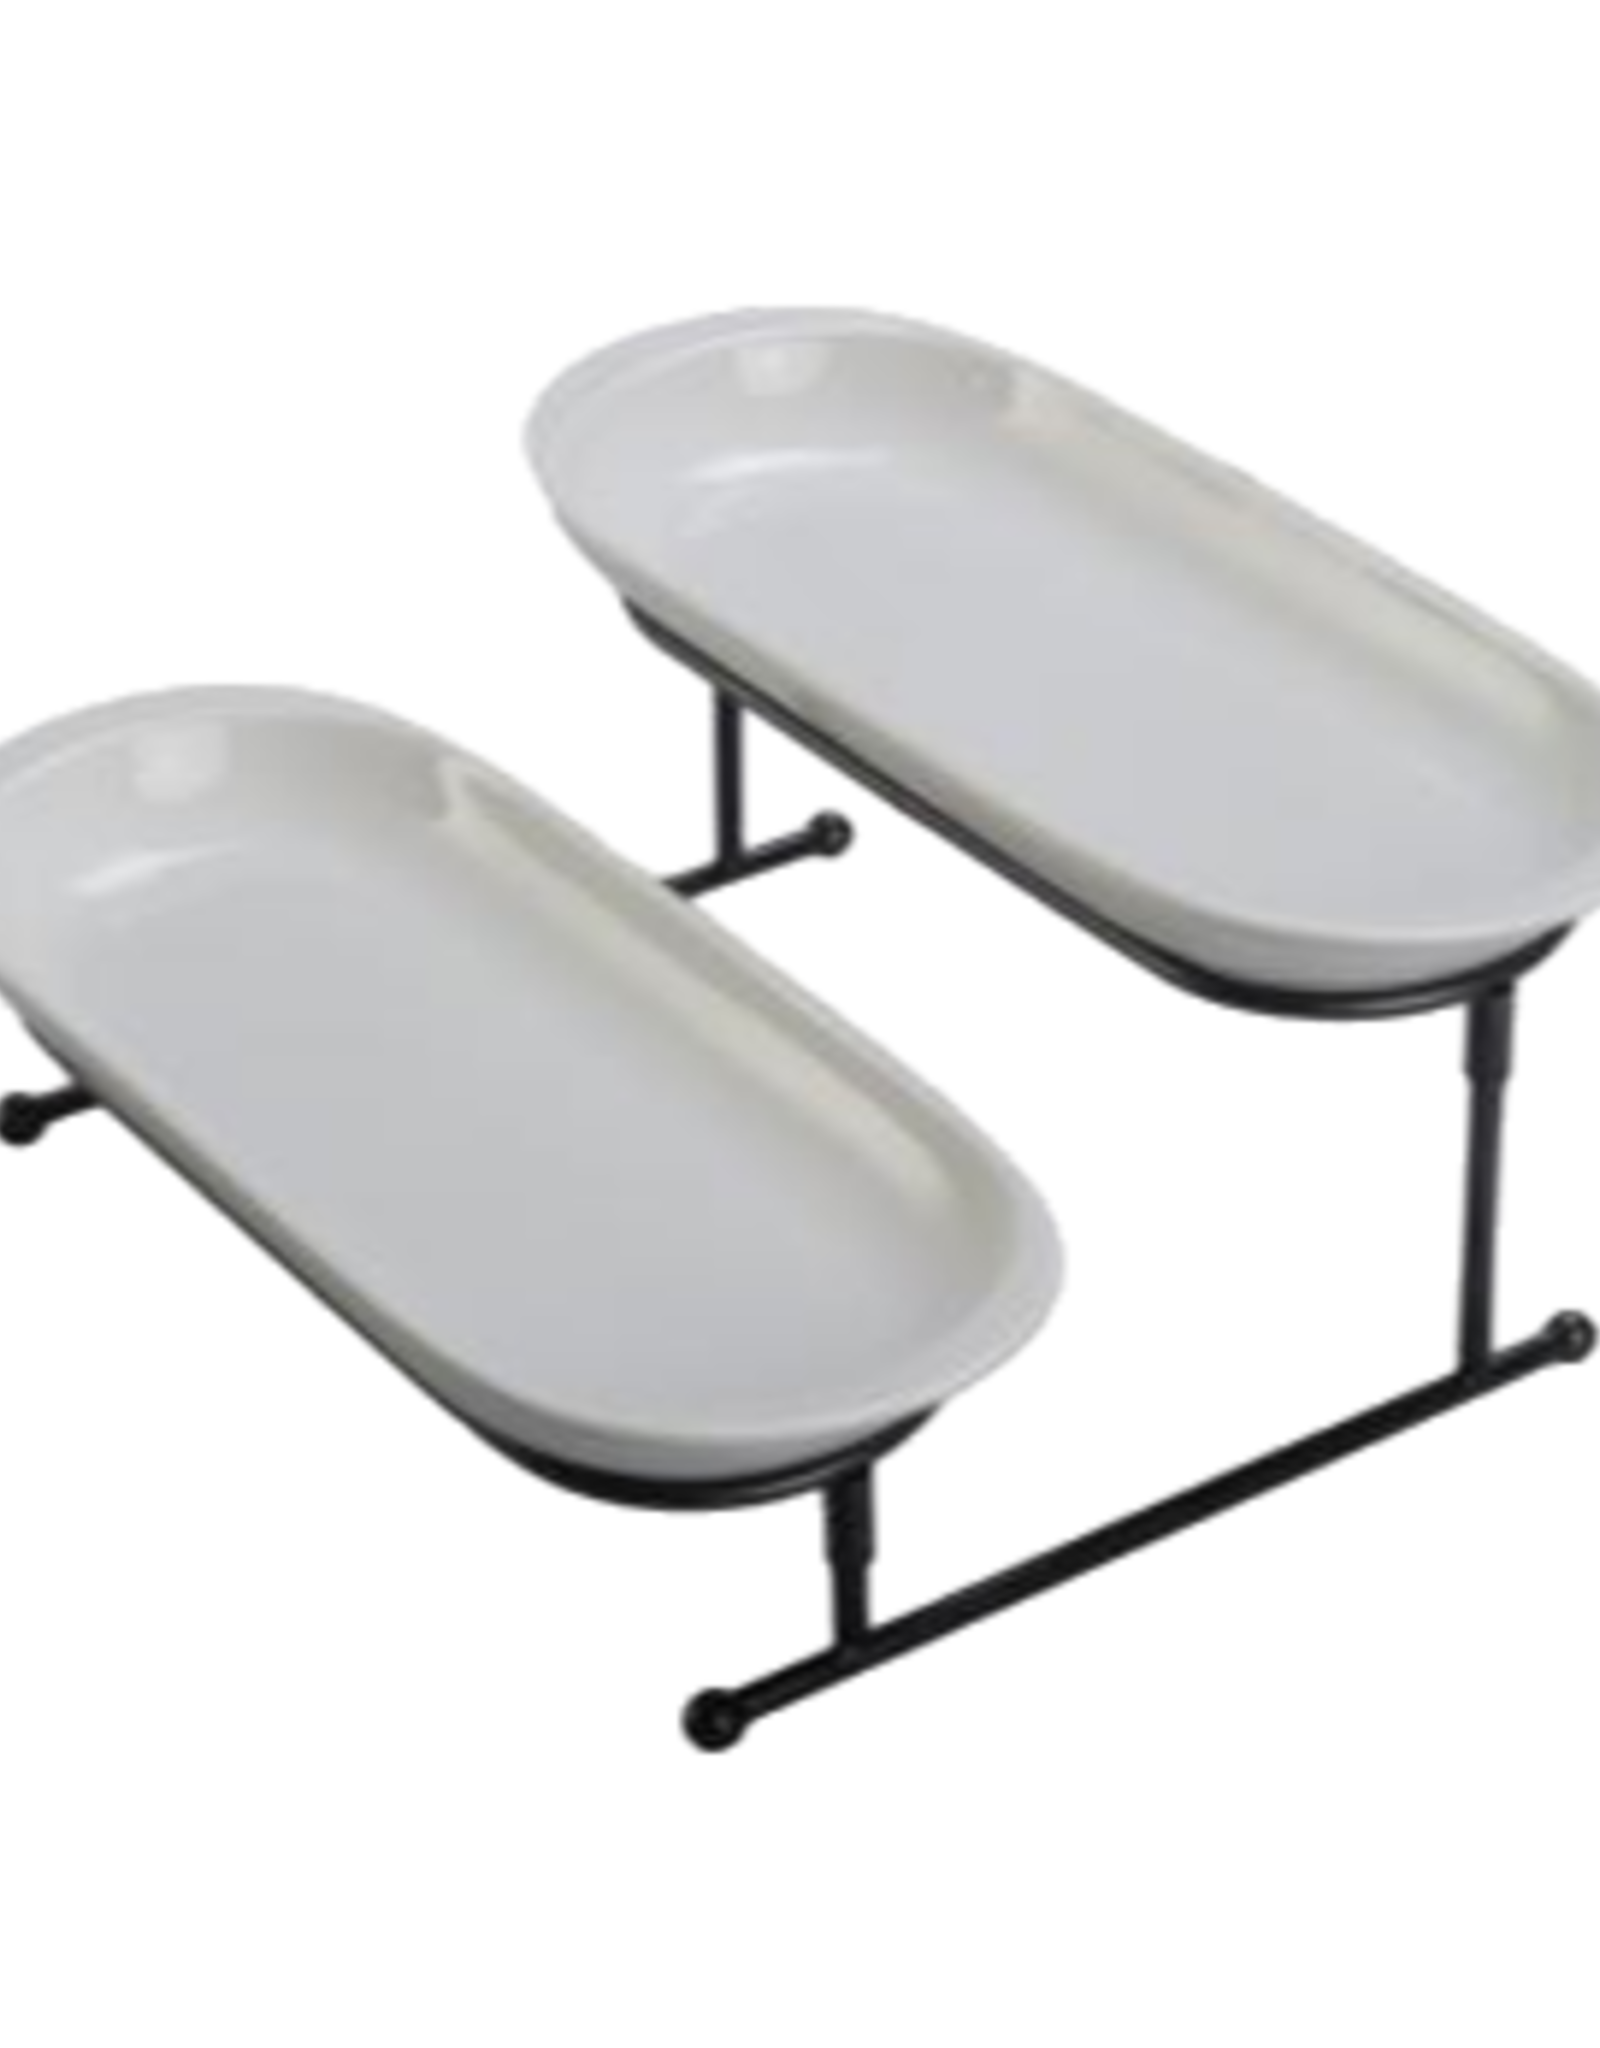 TRAY SET WITH STAND 2 SMALL OVAL DISHES